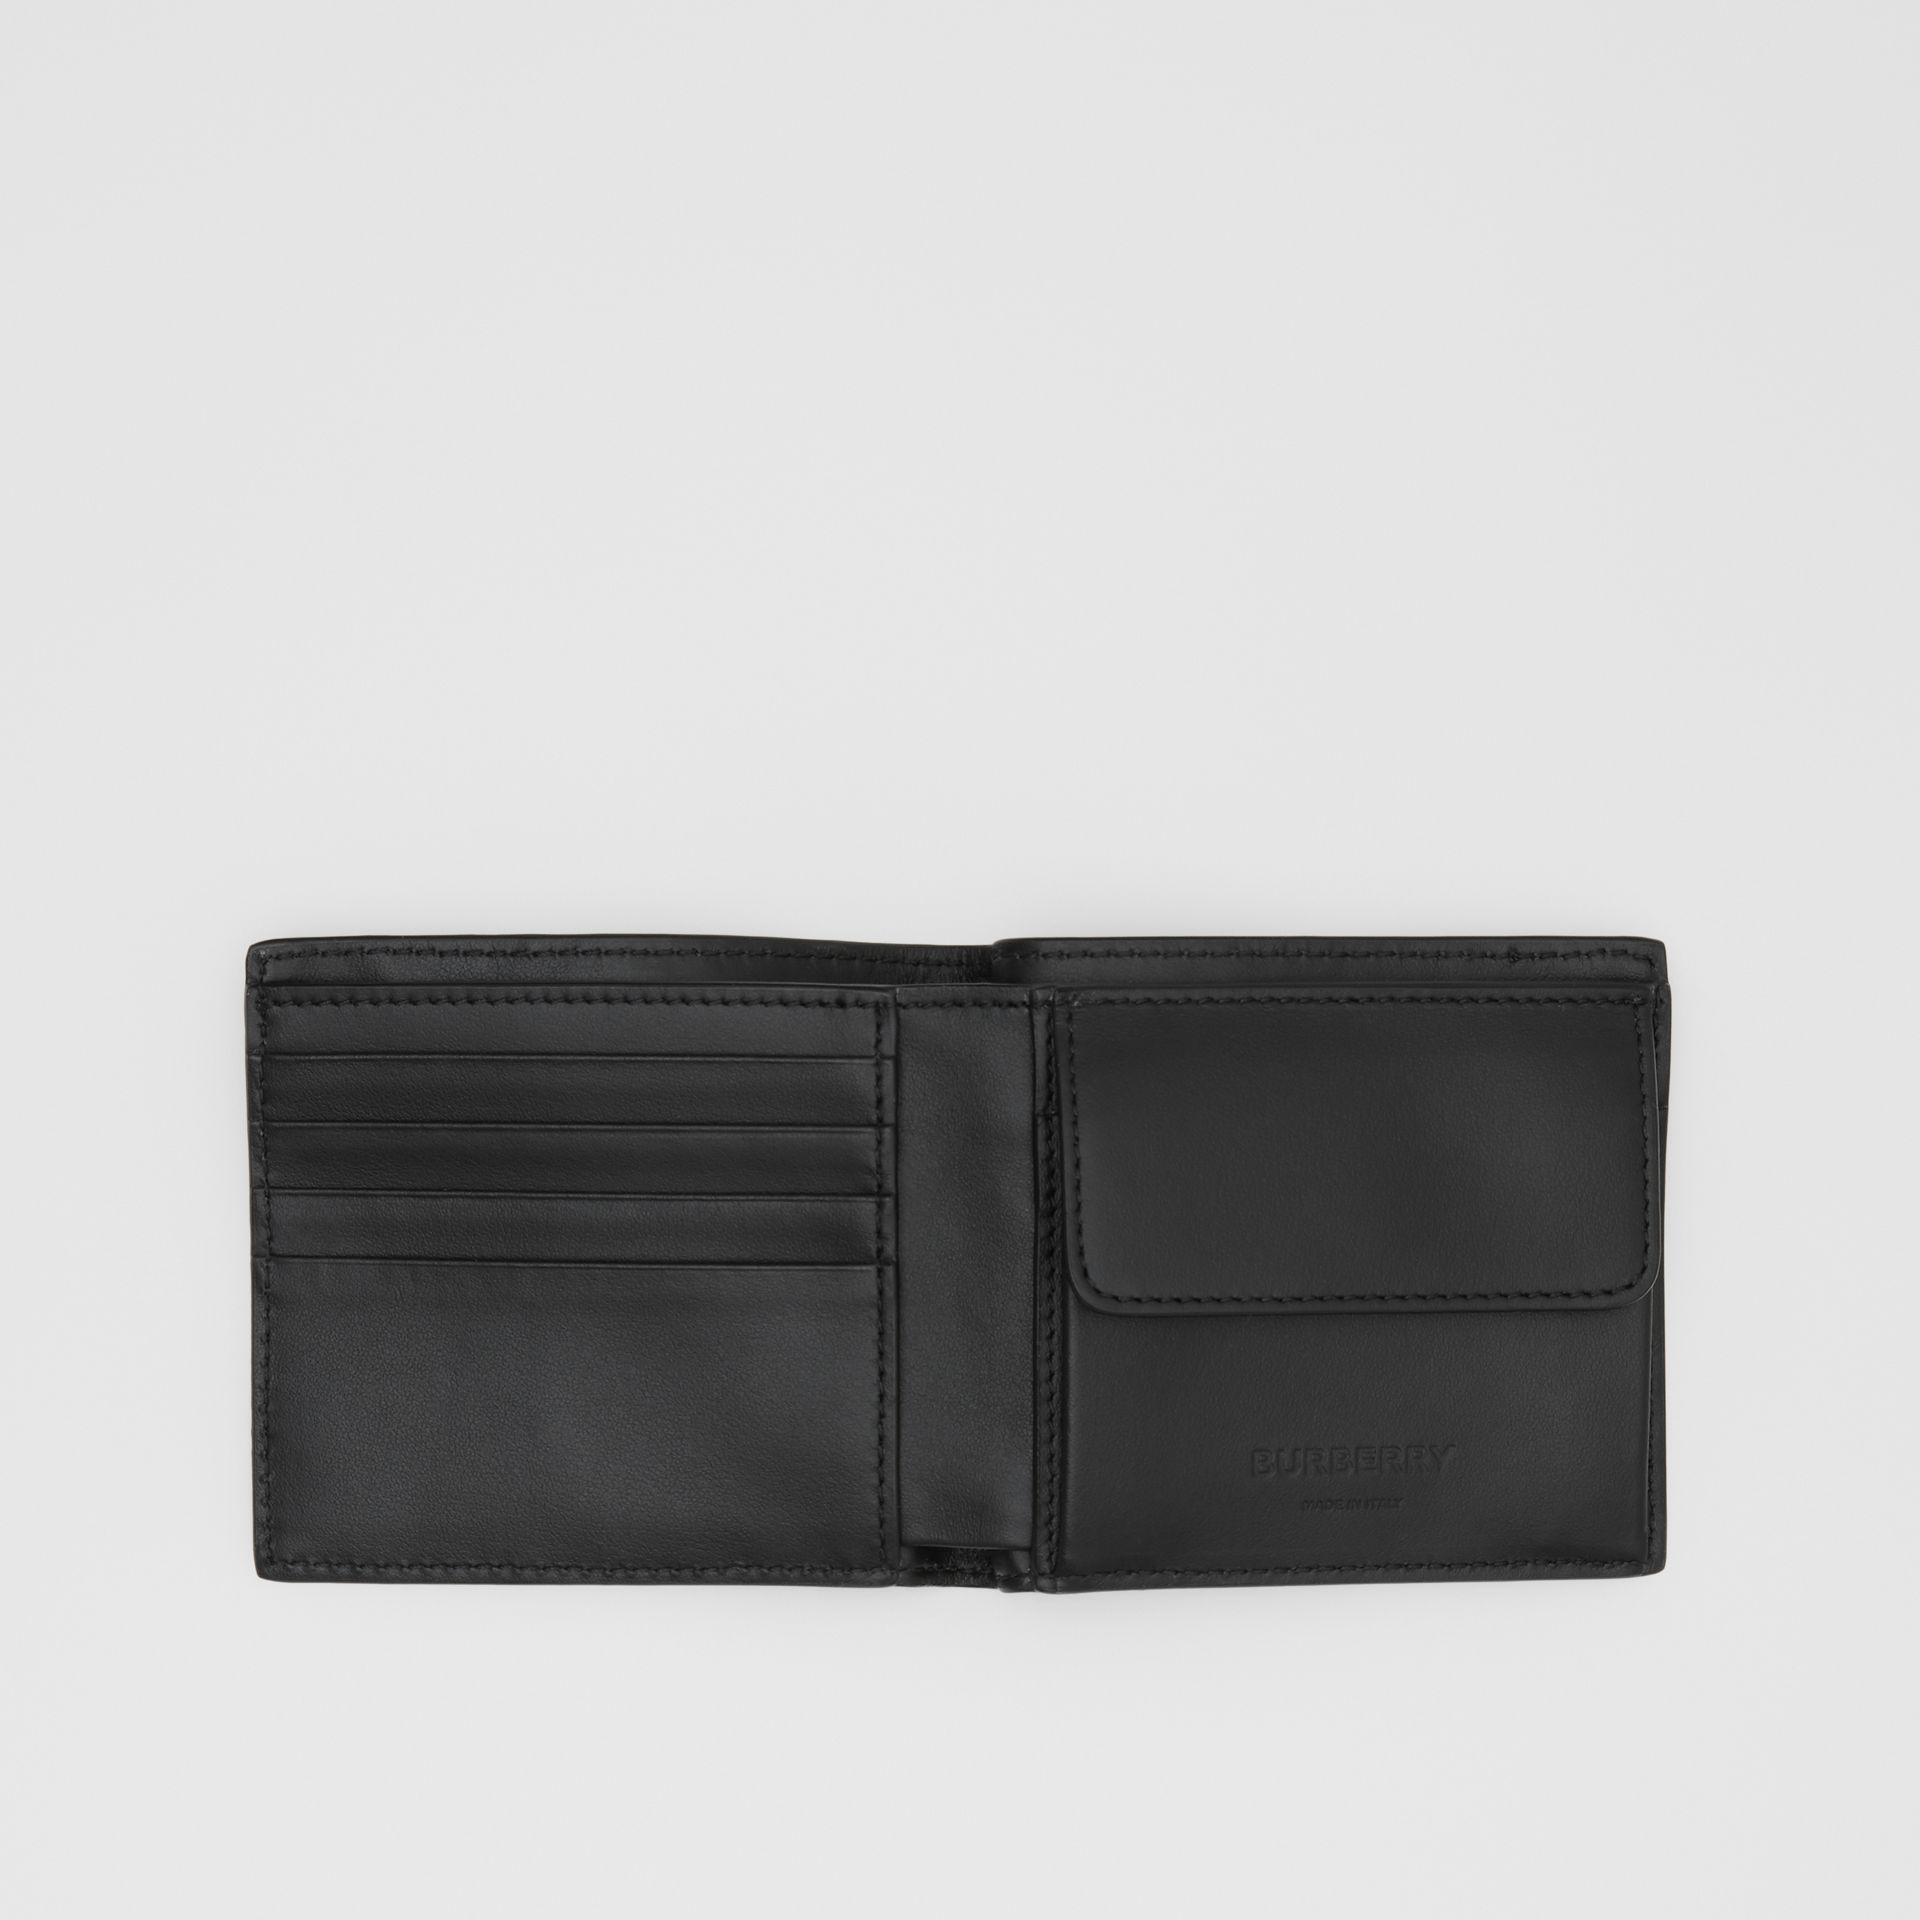 Monogram Leather International Bifold Coin Wallet in Black - Men | Burberry - gallery image 2